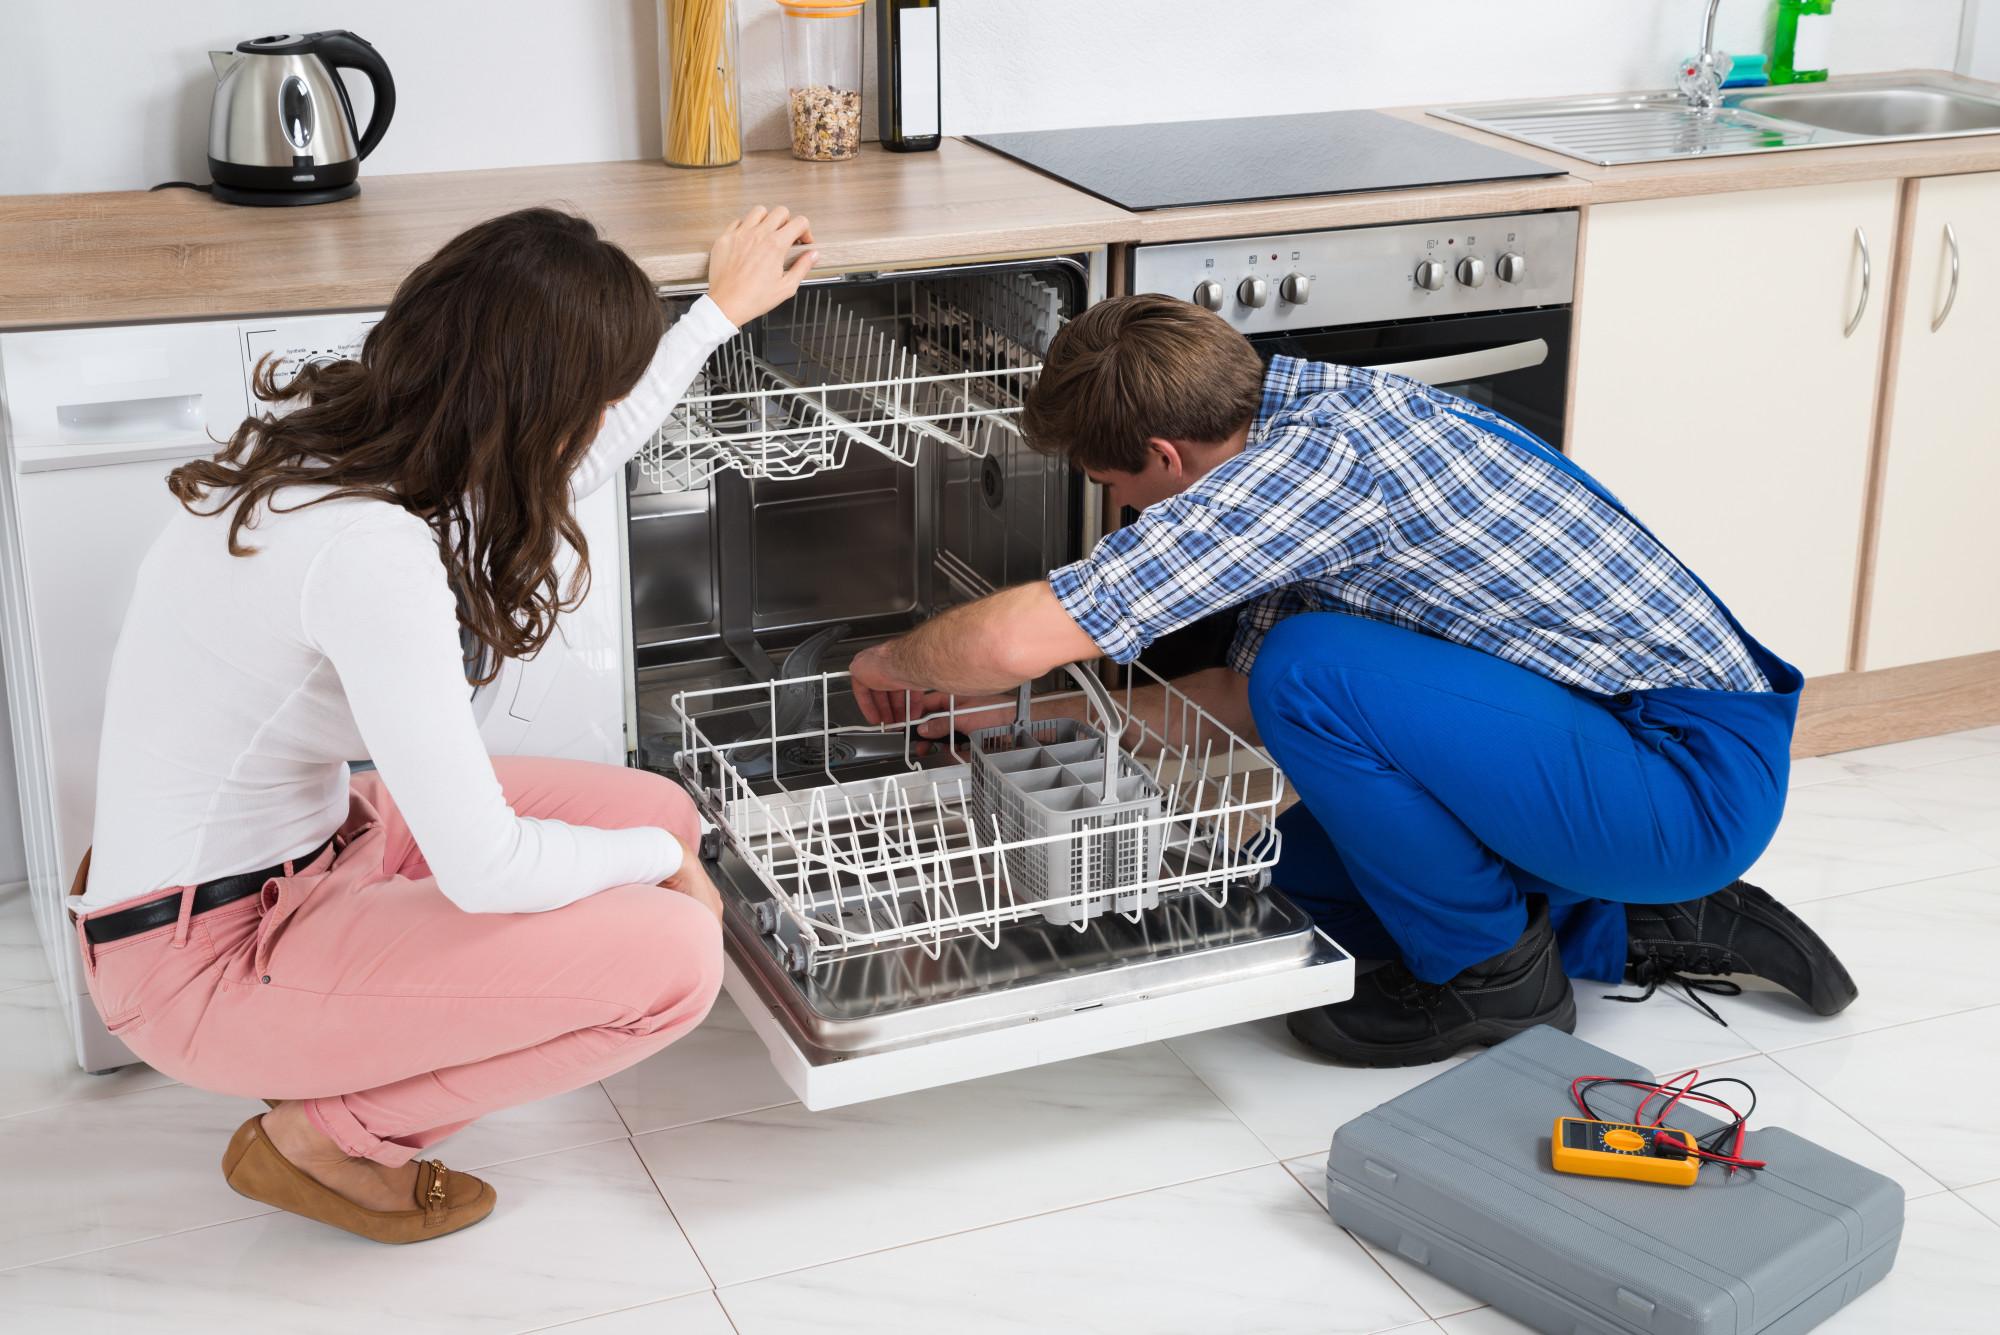 Dishes Not Getting Clean? 7 Telltale Signs You Need to Repair or Replace Dishwasher